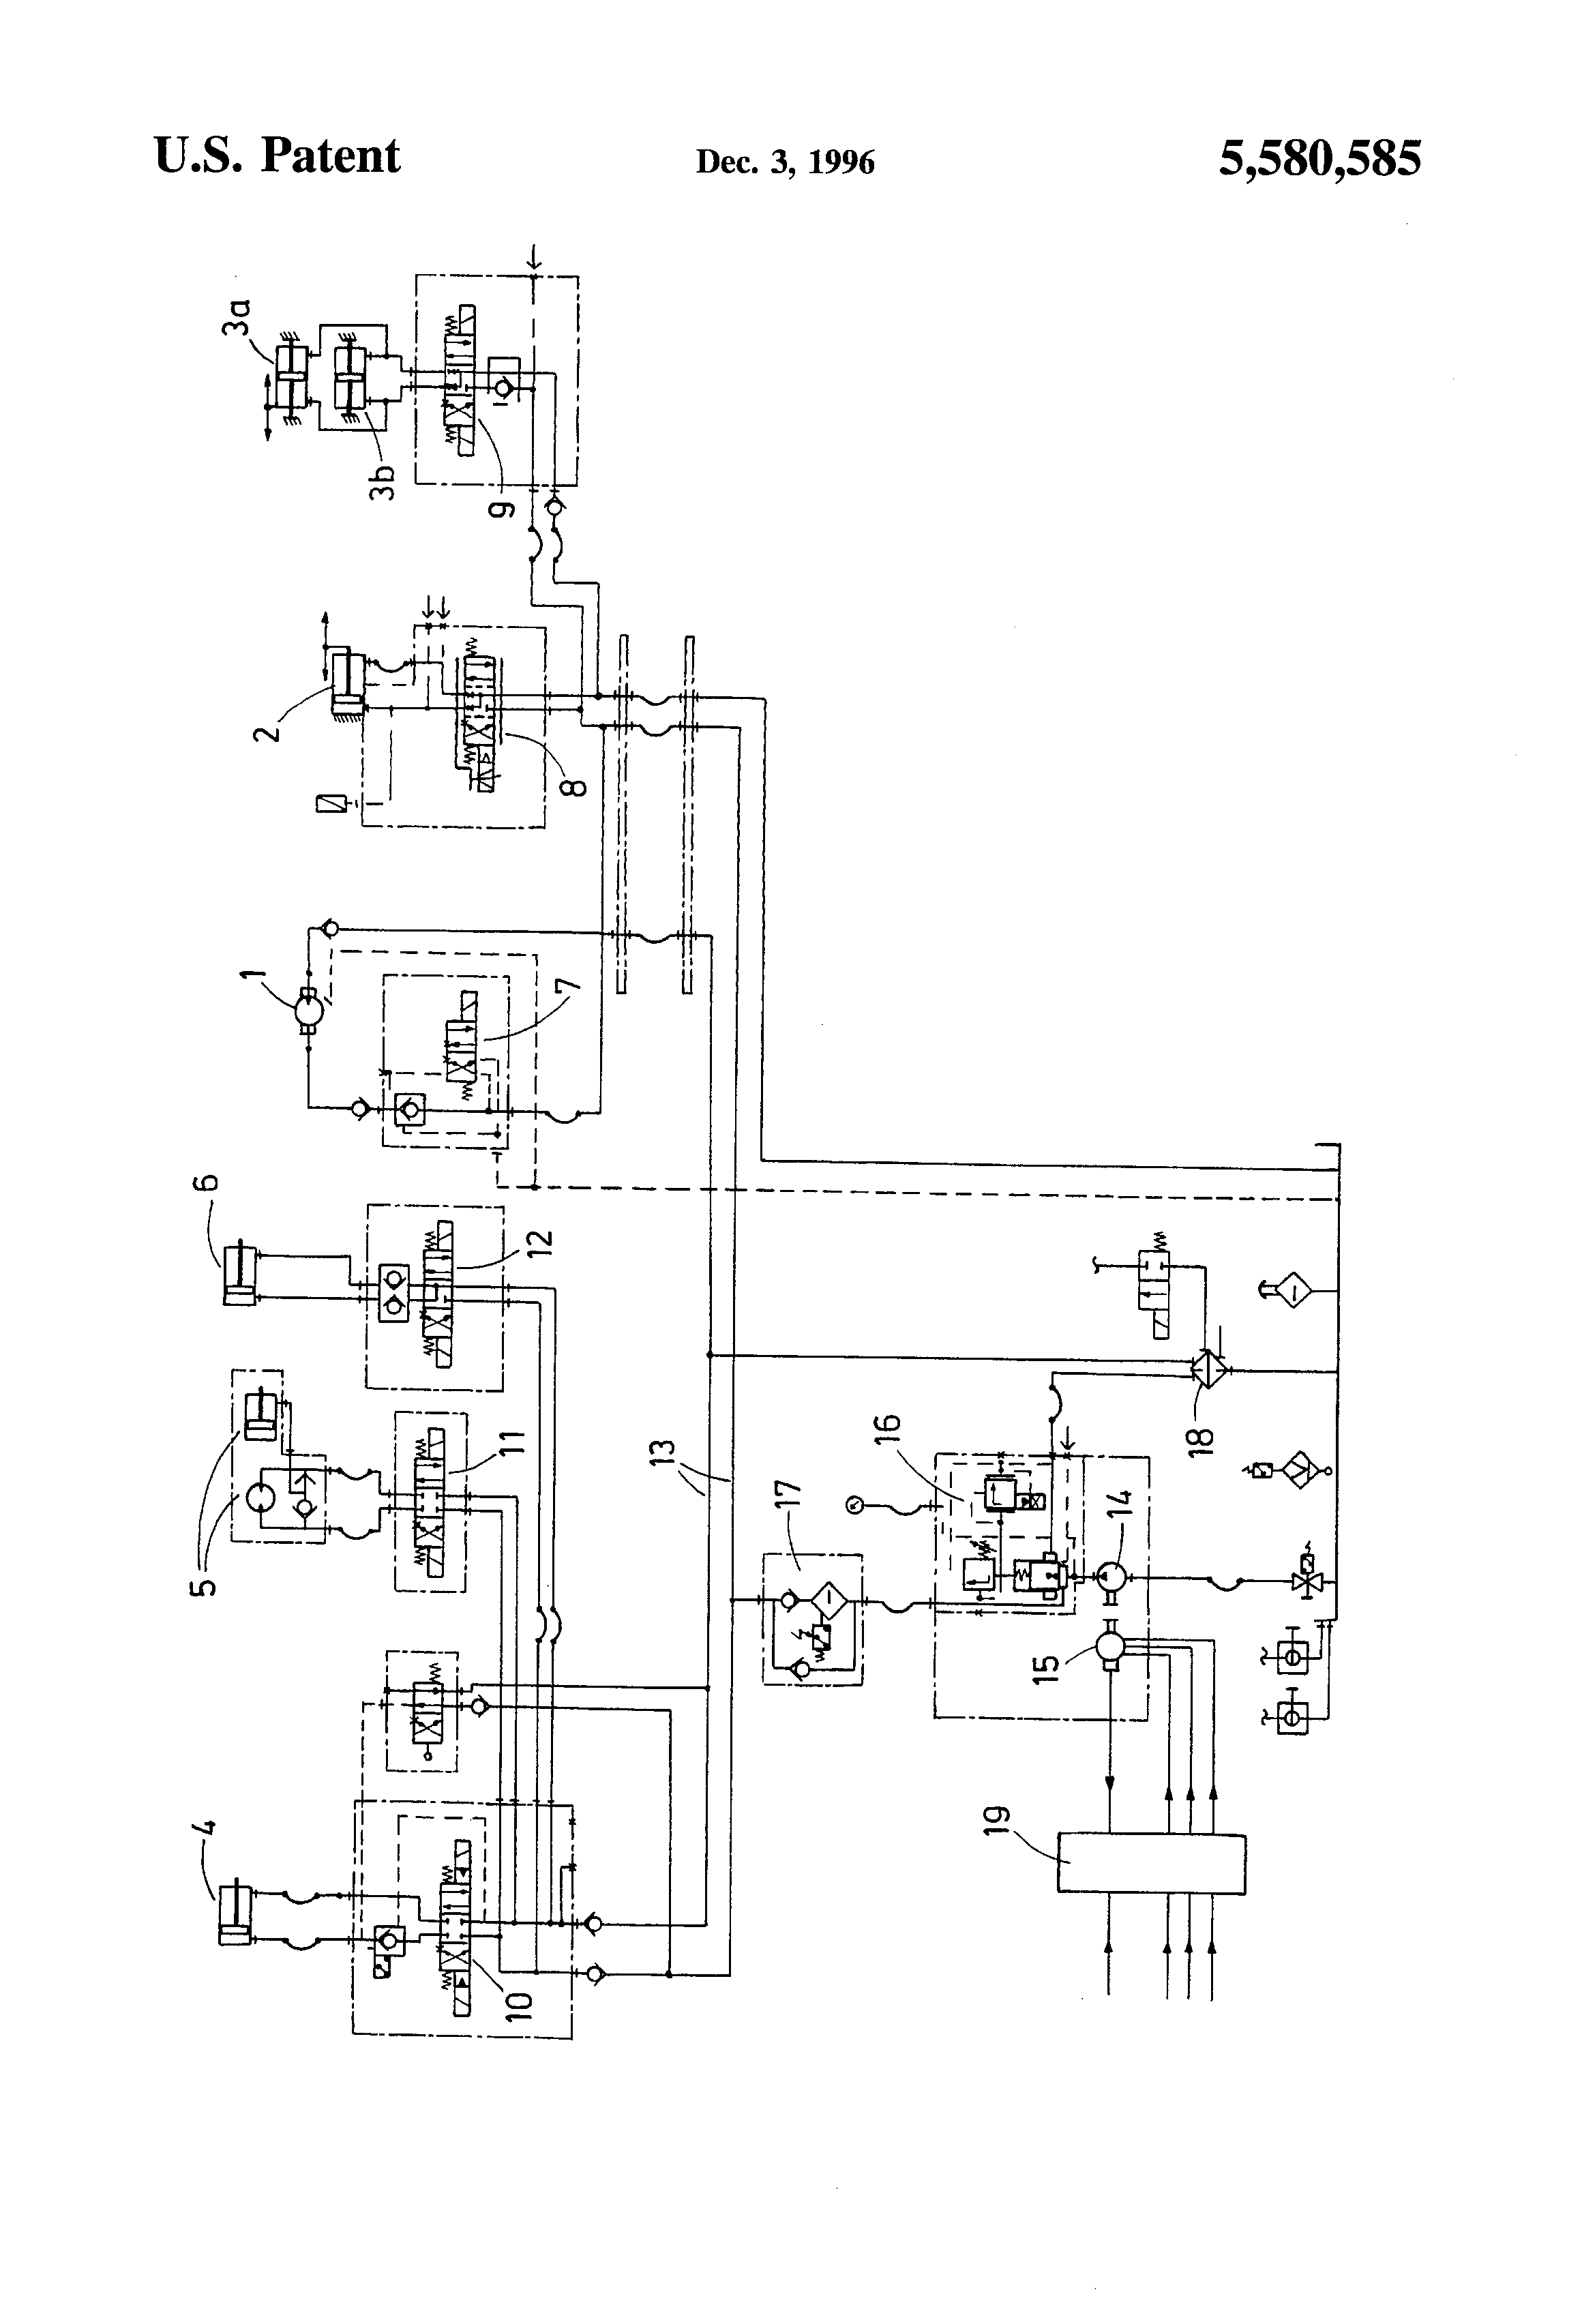 patent us5580585 - hydraulic operational system for an injection molding machine